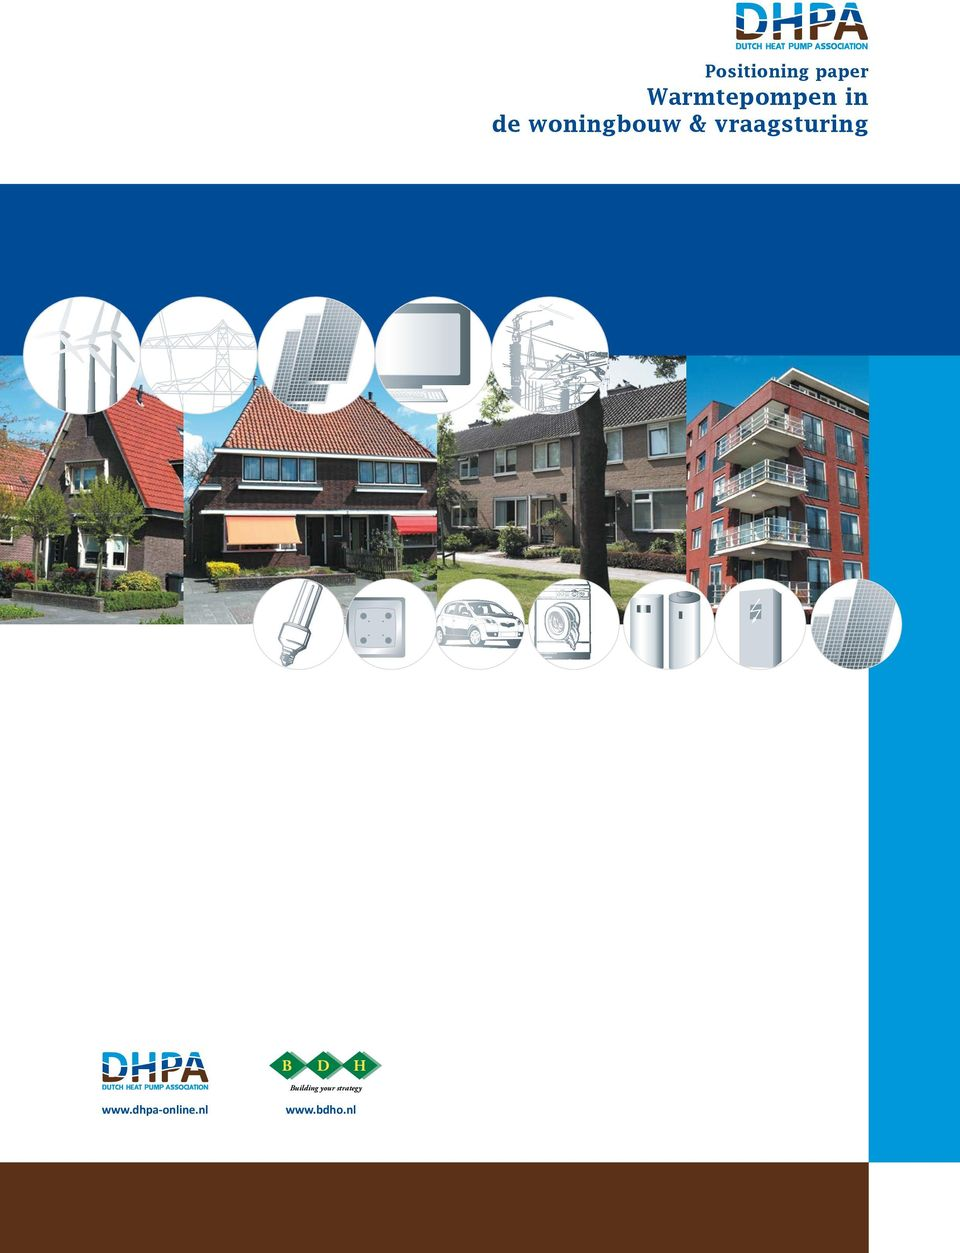 dhpa-online.